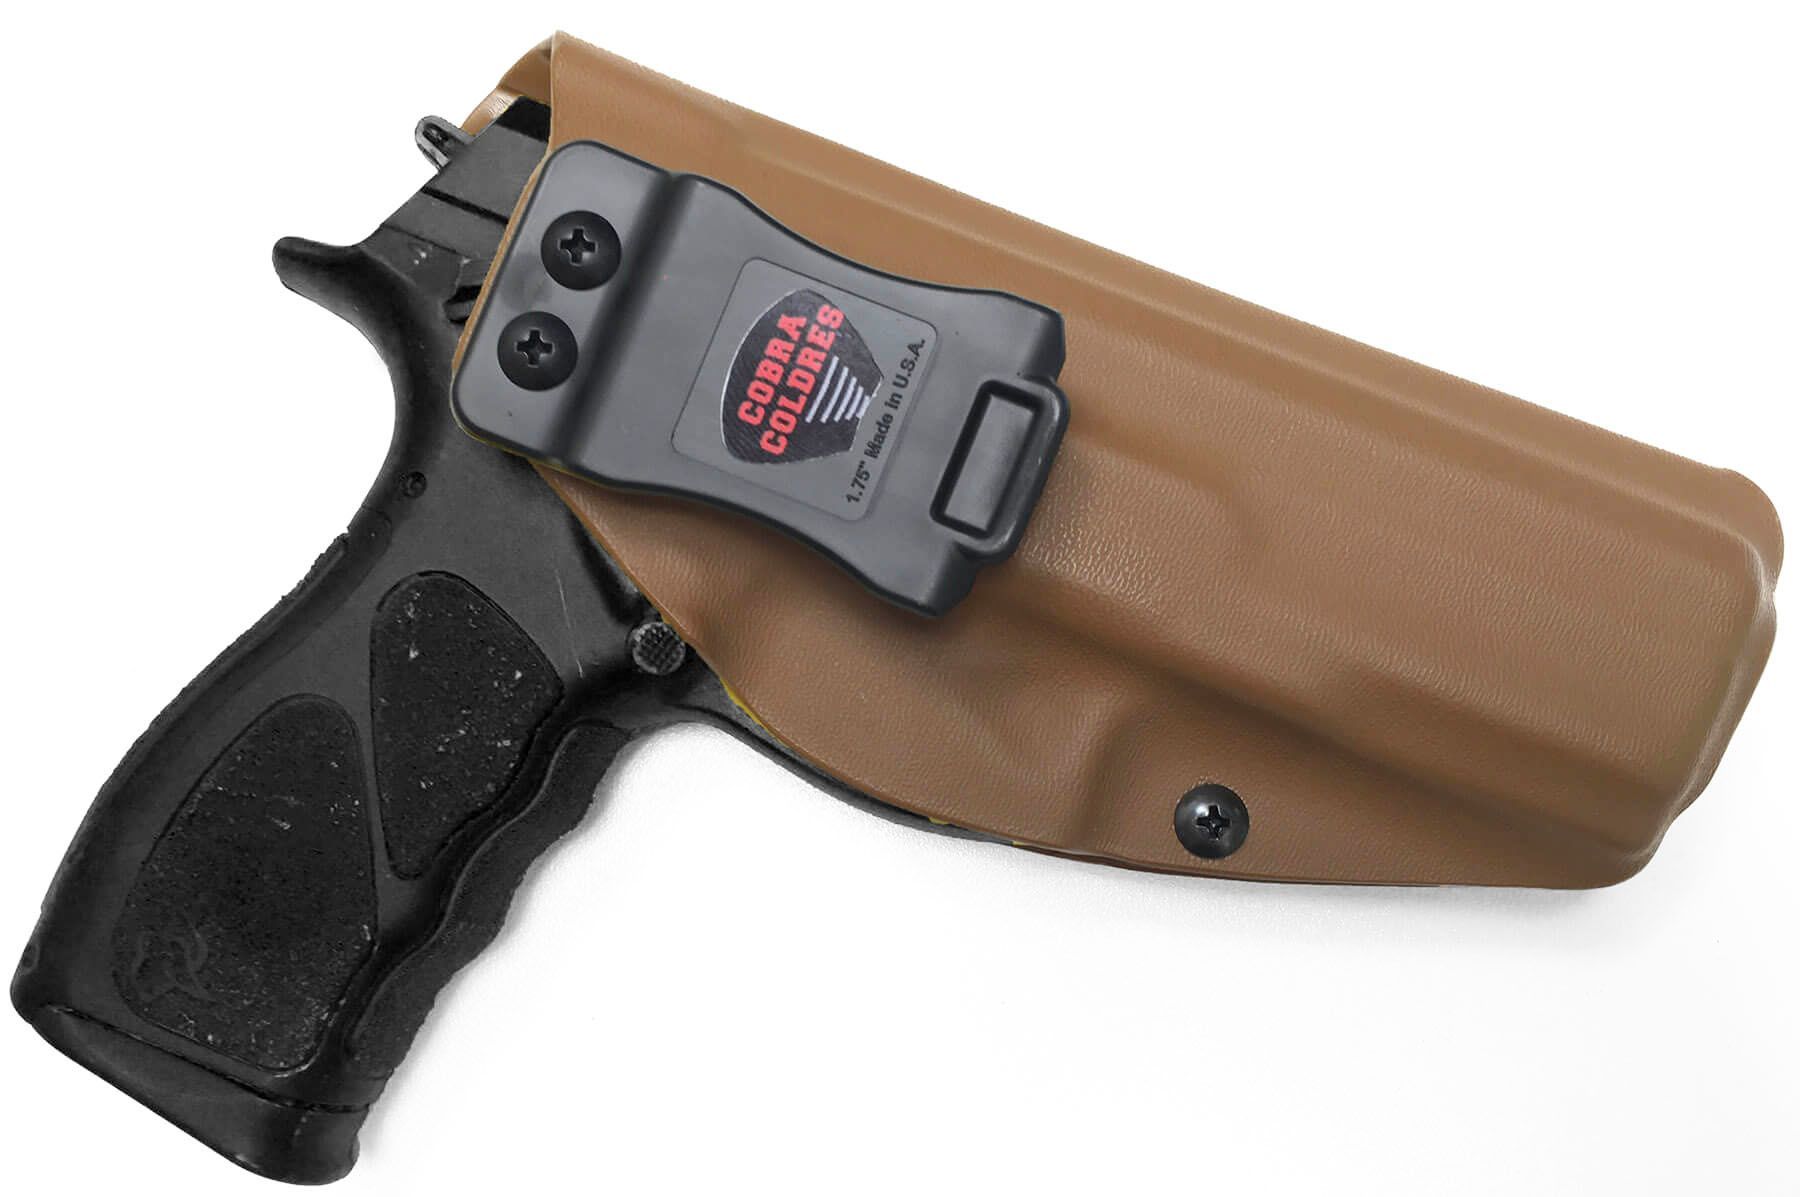 Coldre Slim TH9 TH40 TH380 Saque Rápido Velado Kydex® 080 - Coyote Brown